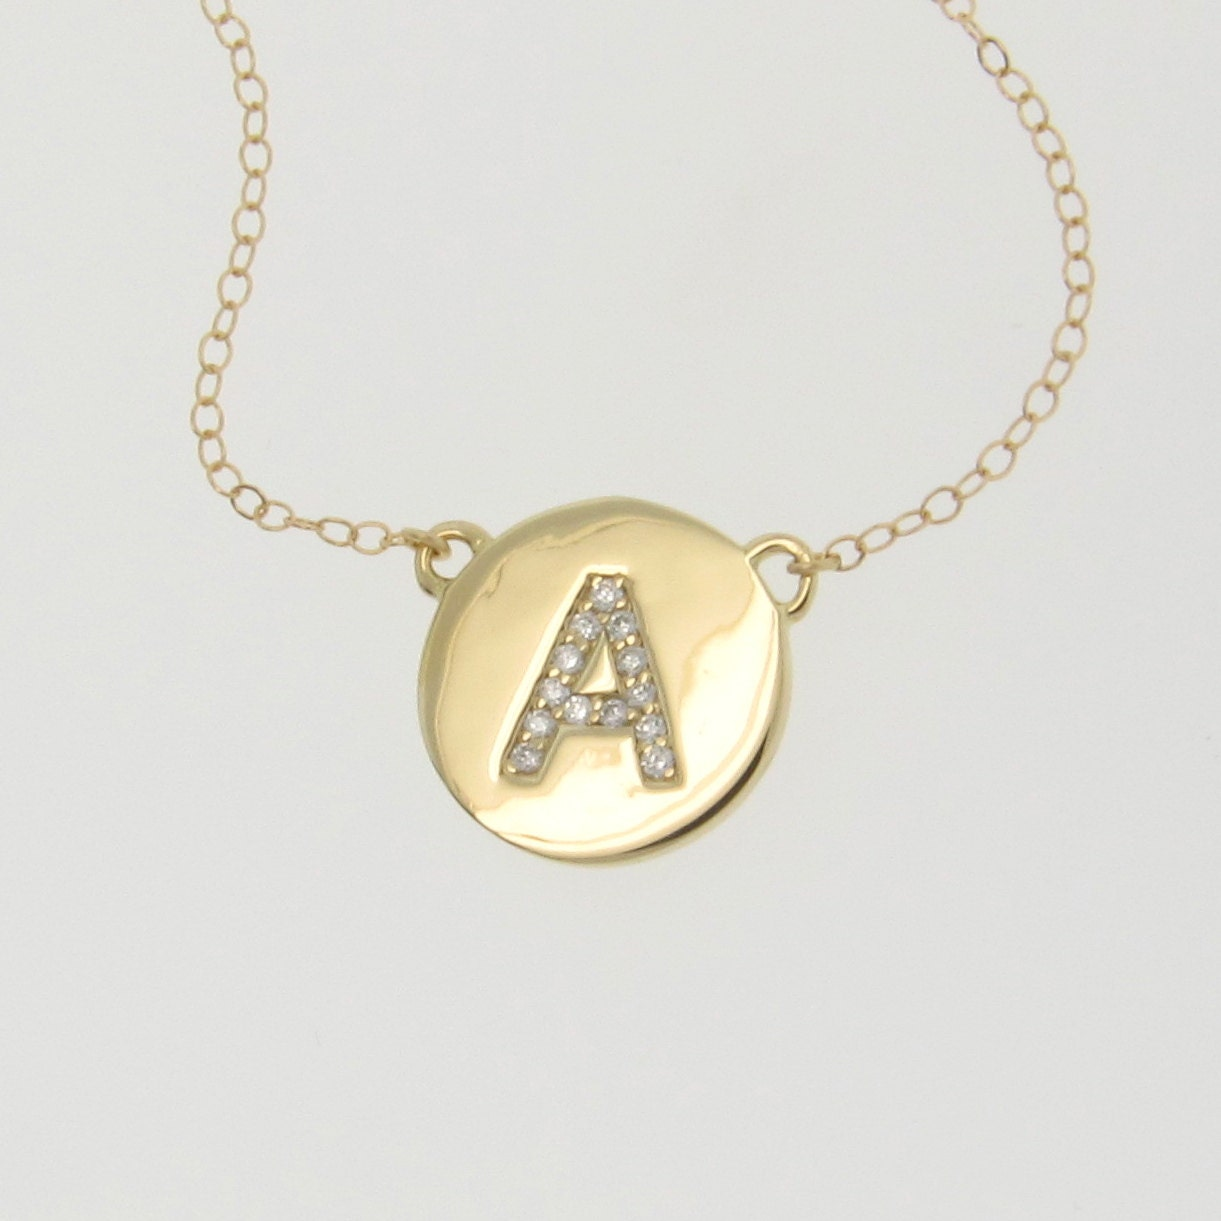 Diamond initial necklace your letter necklace 14k yellow zoom mozeypictures Image collections